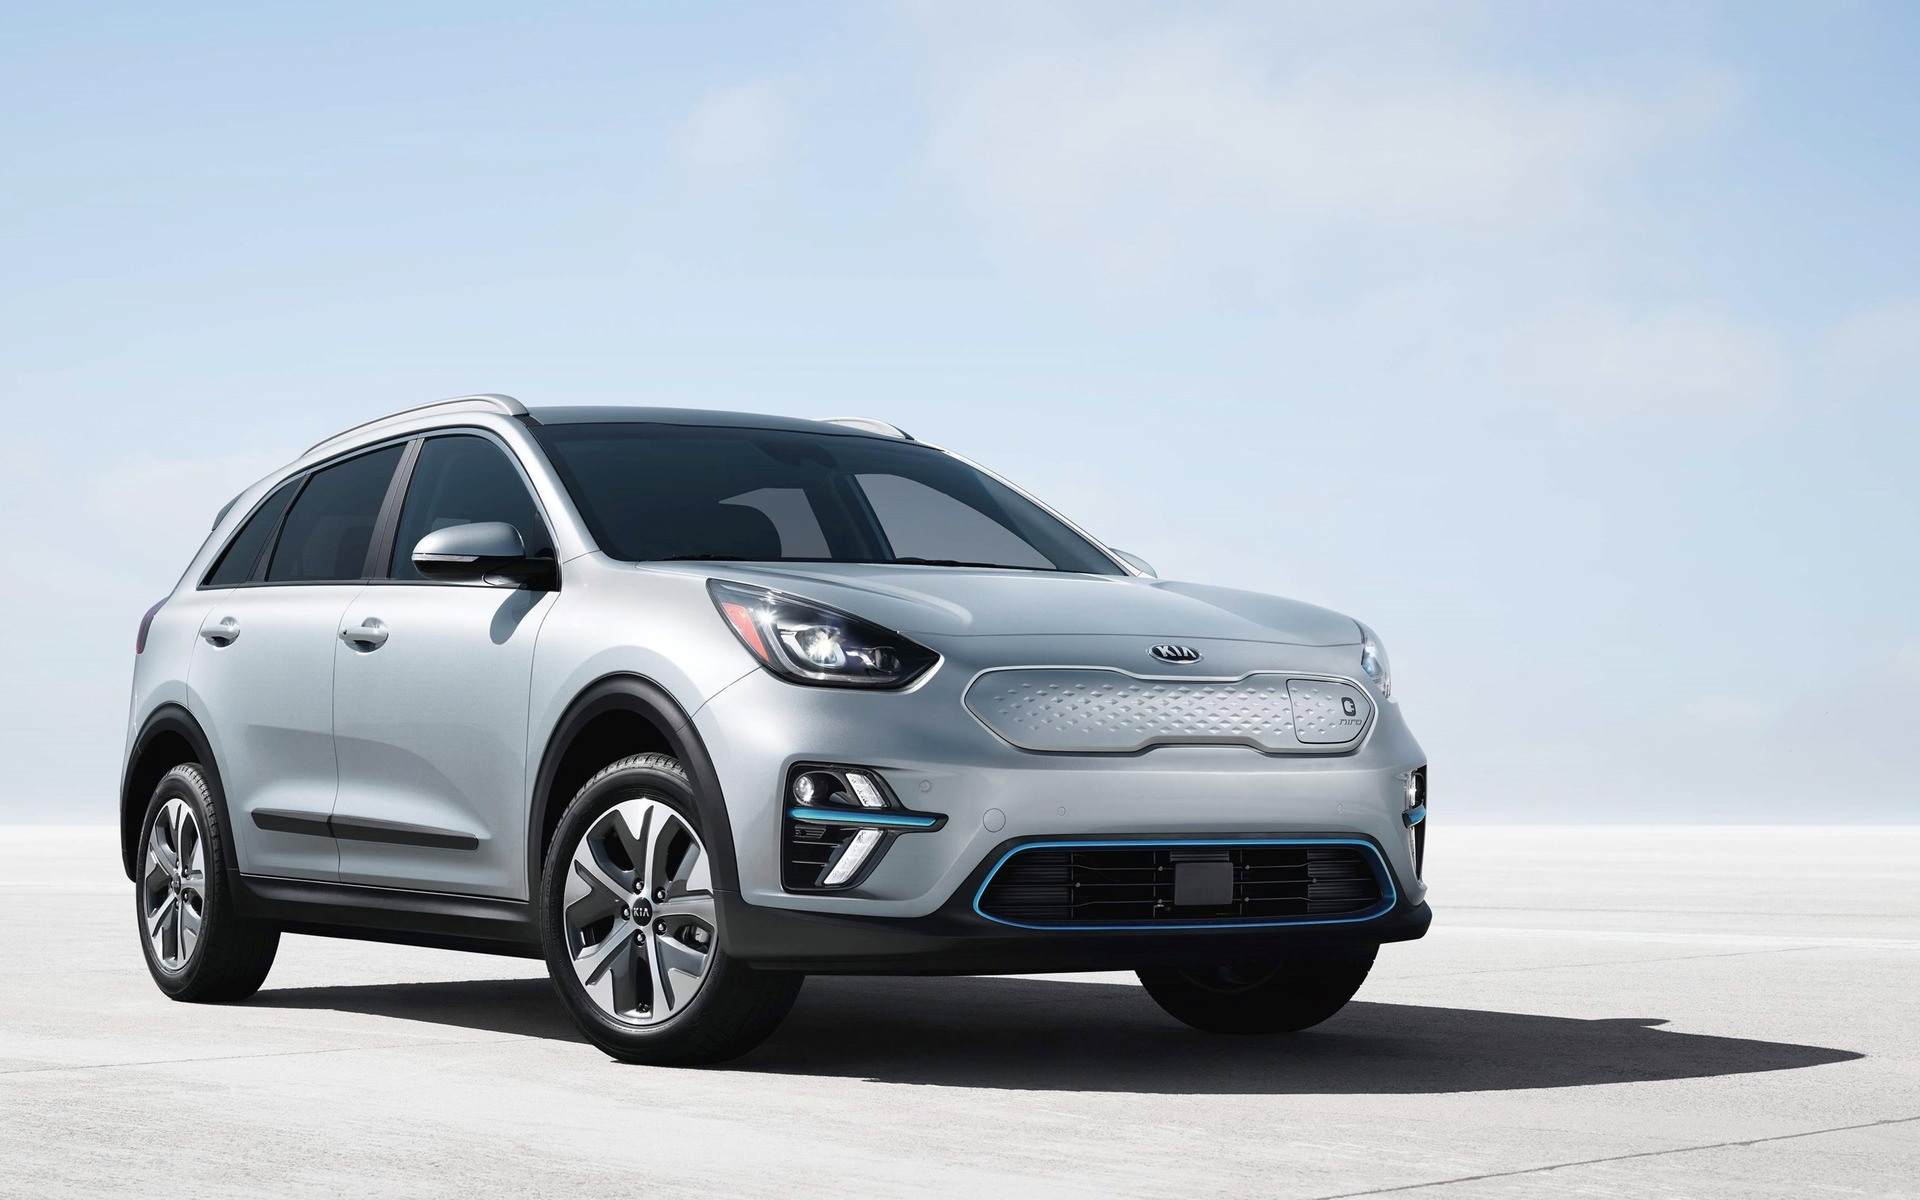 kia niro ev 2019 le plein d lectrons guide auto. Black Bedroom Furniture Sets. Home Design Ideas